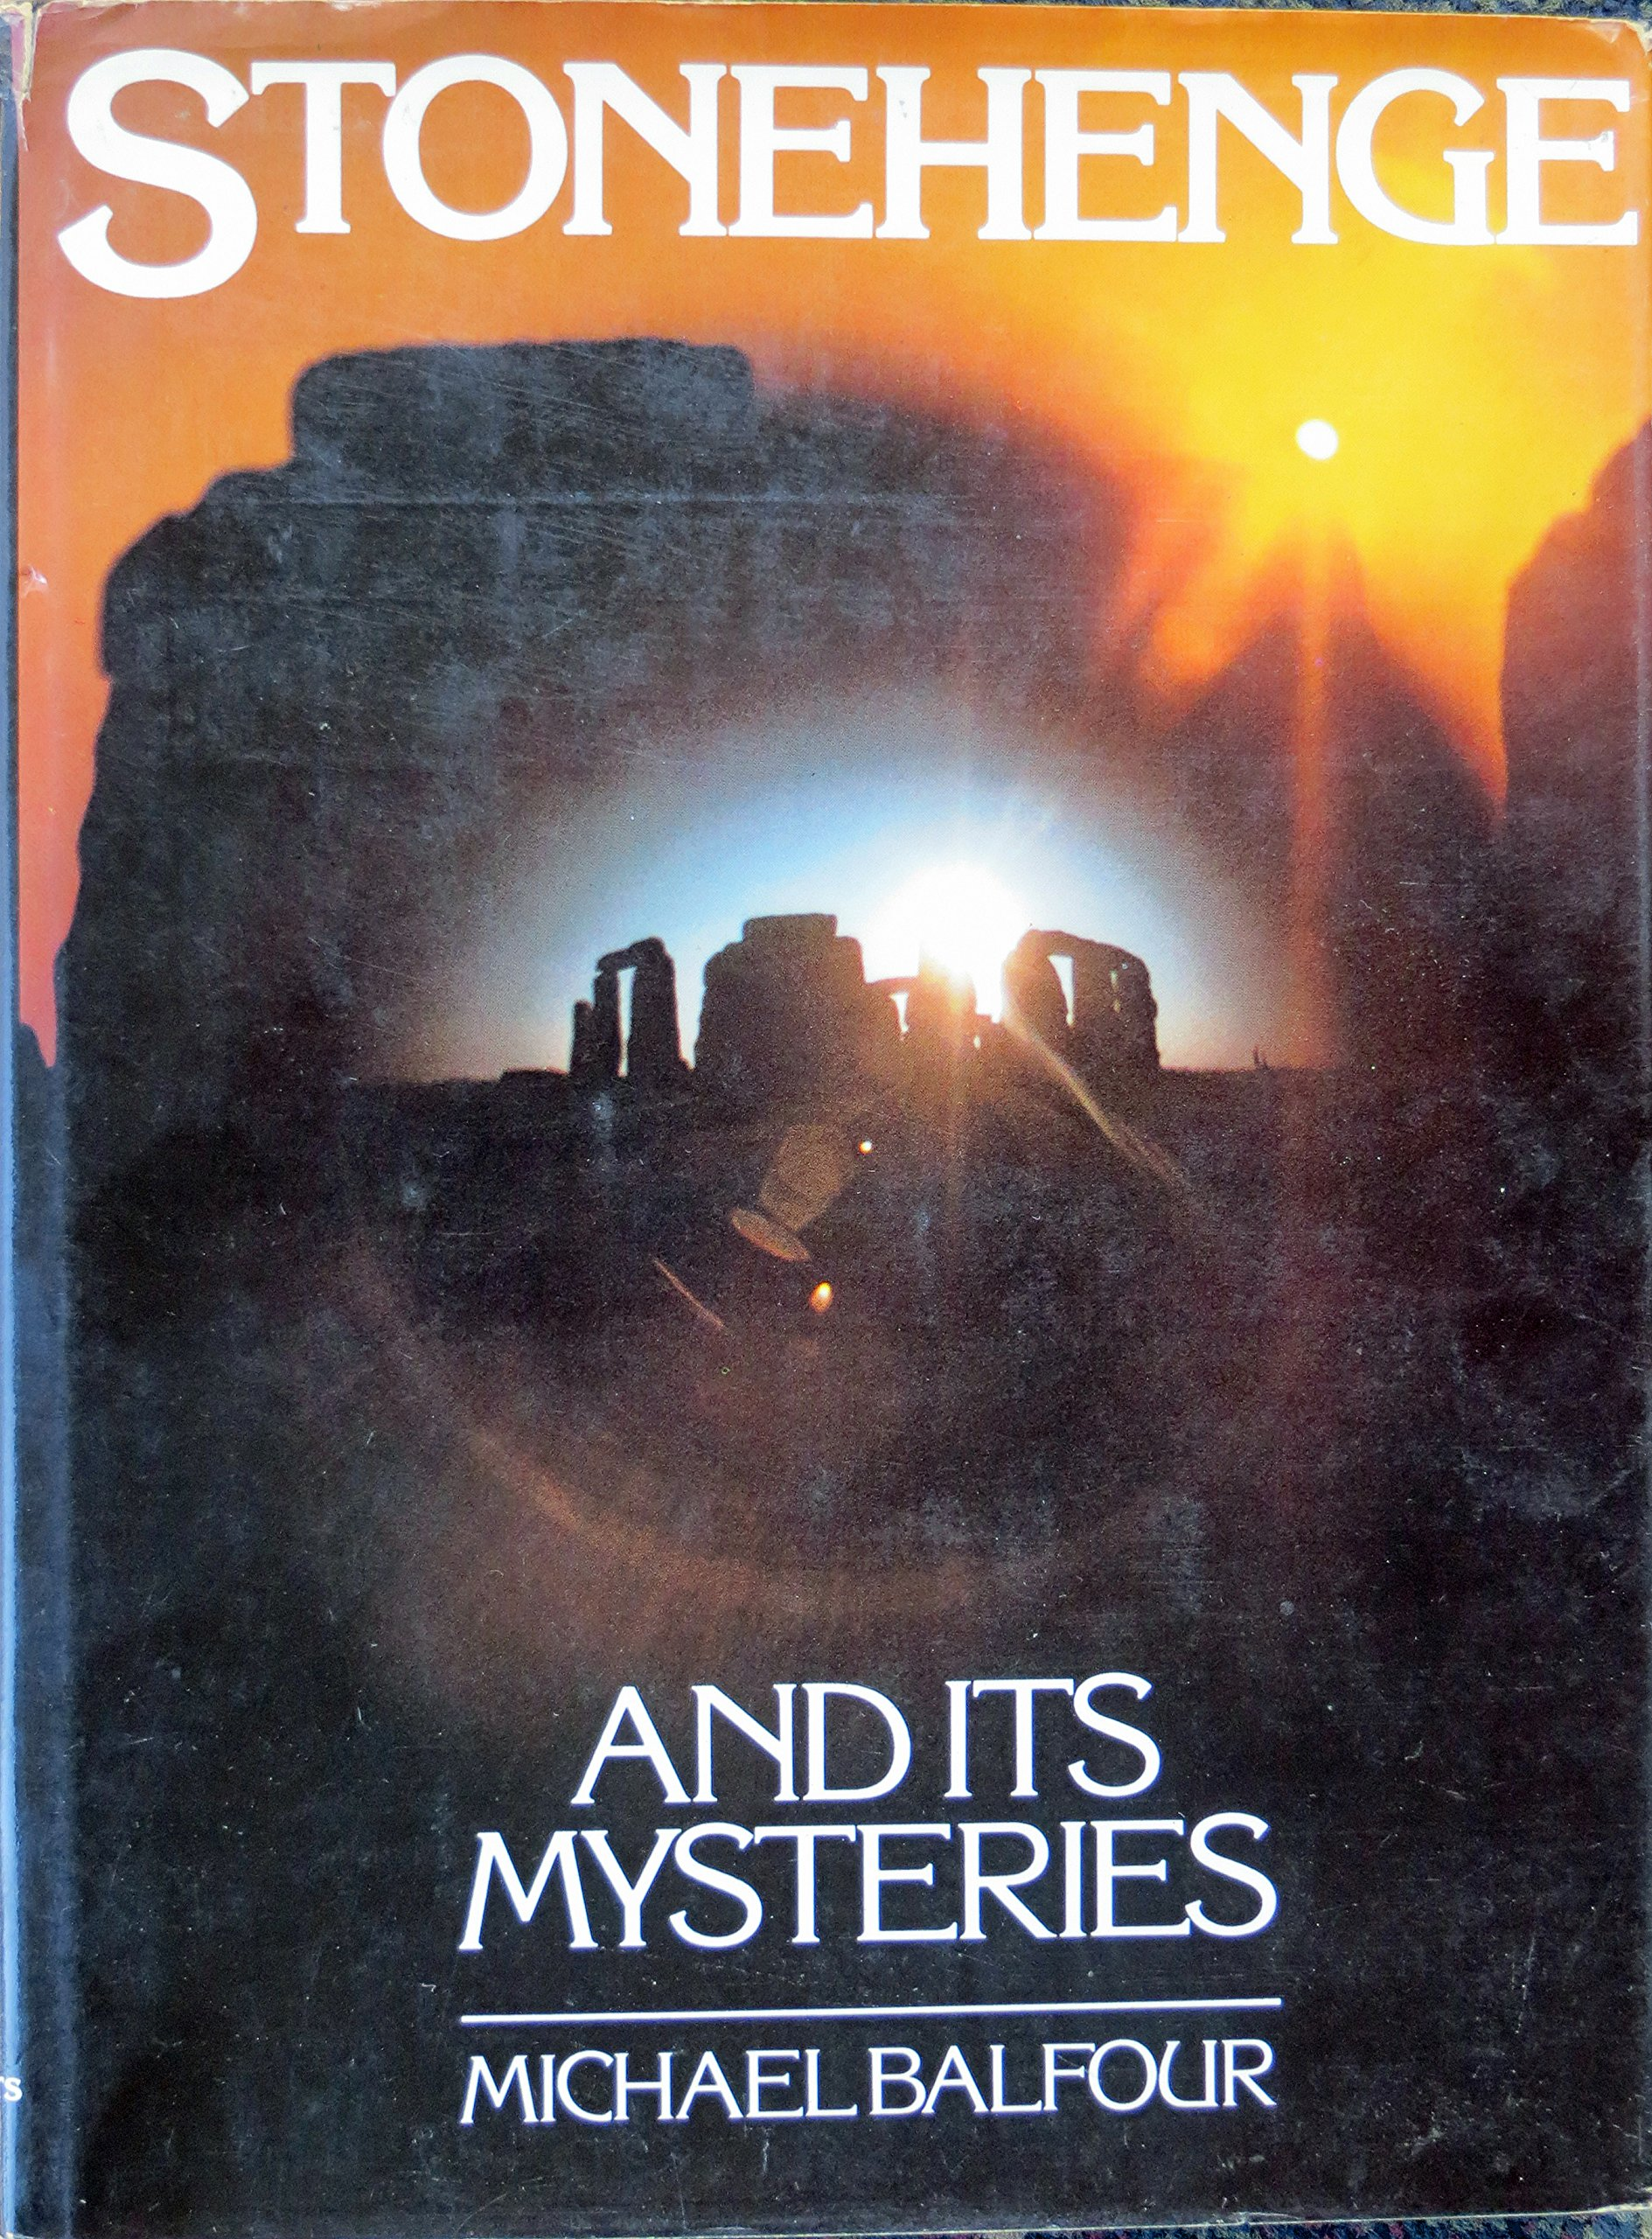 Image result for picture of book Stonehenge and its Mysteries by Michael Balfour